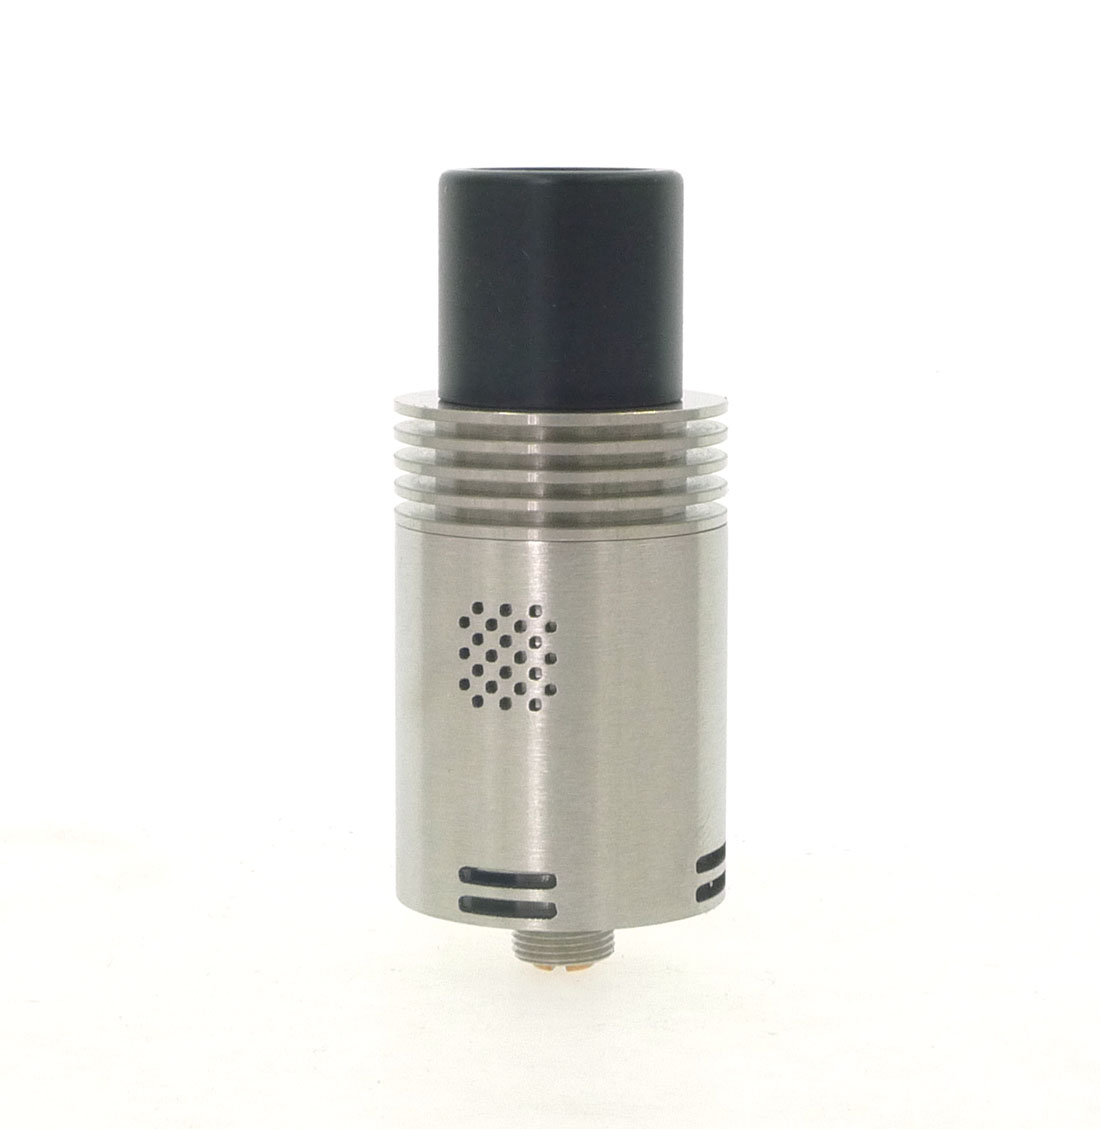 SS Mutation X V4 RDA Rebuildable Dripping Atomizer Mechanical Dripper Tank ATTY